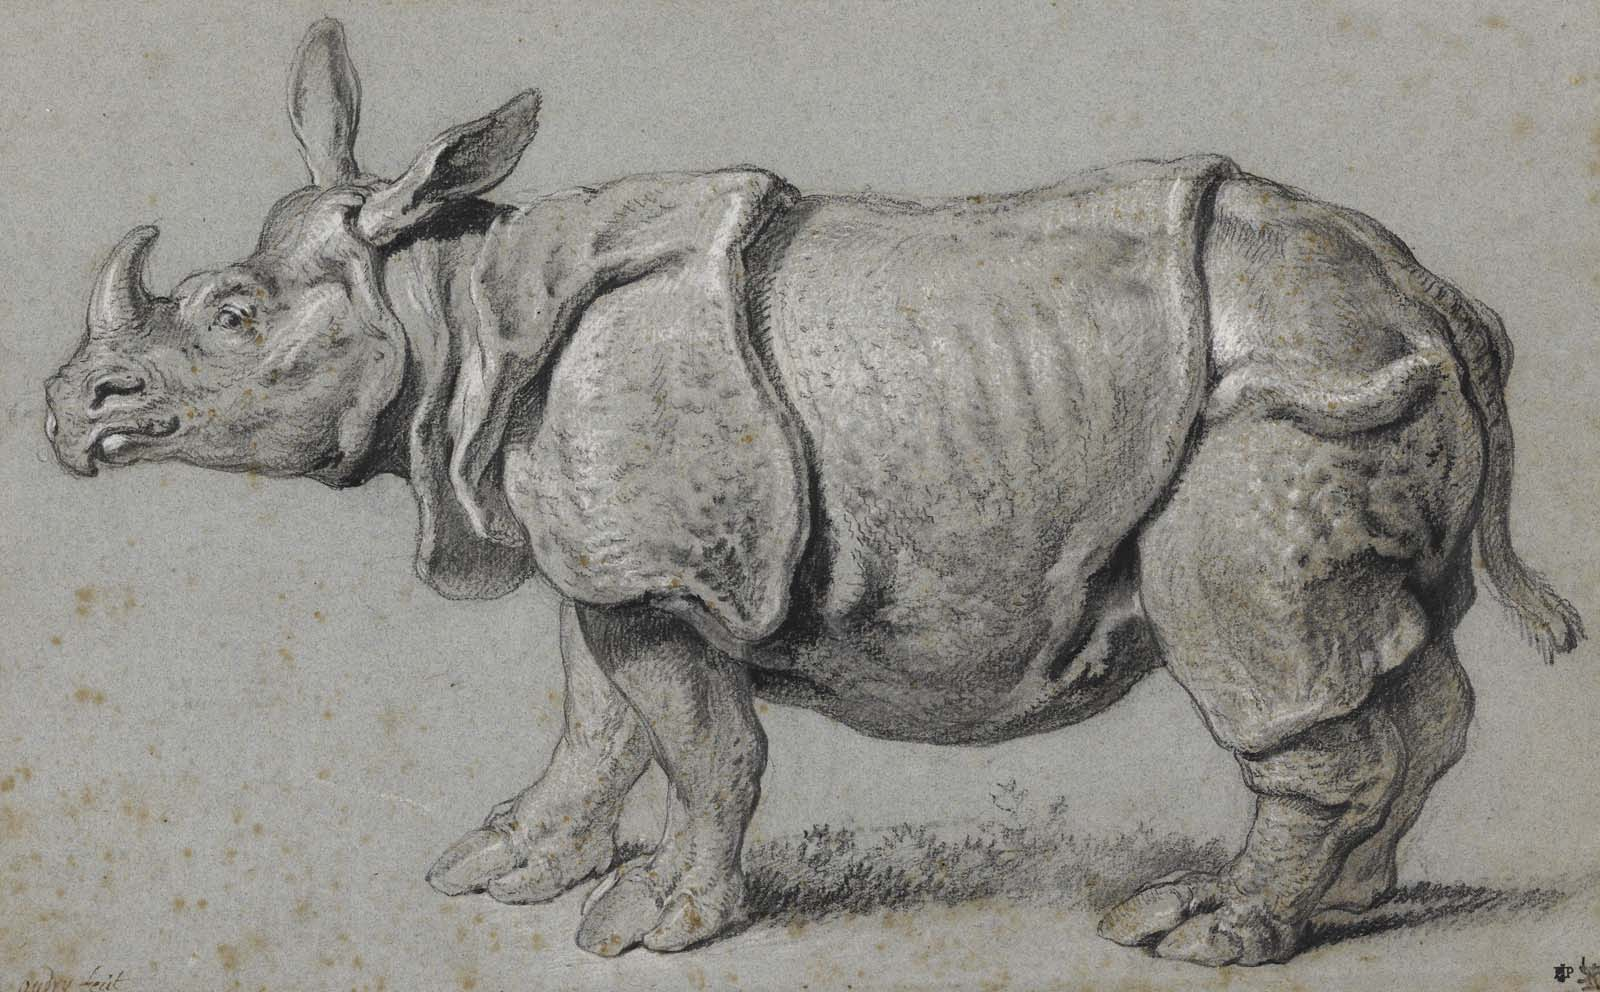 a charcoal drawing of a rhinoceros